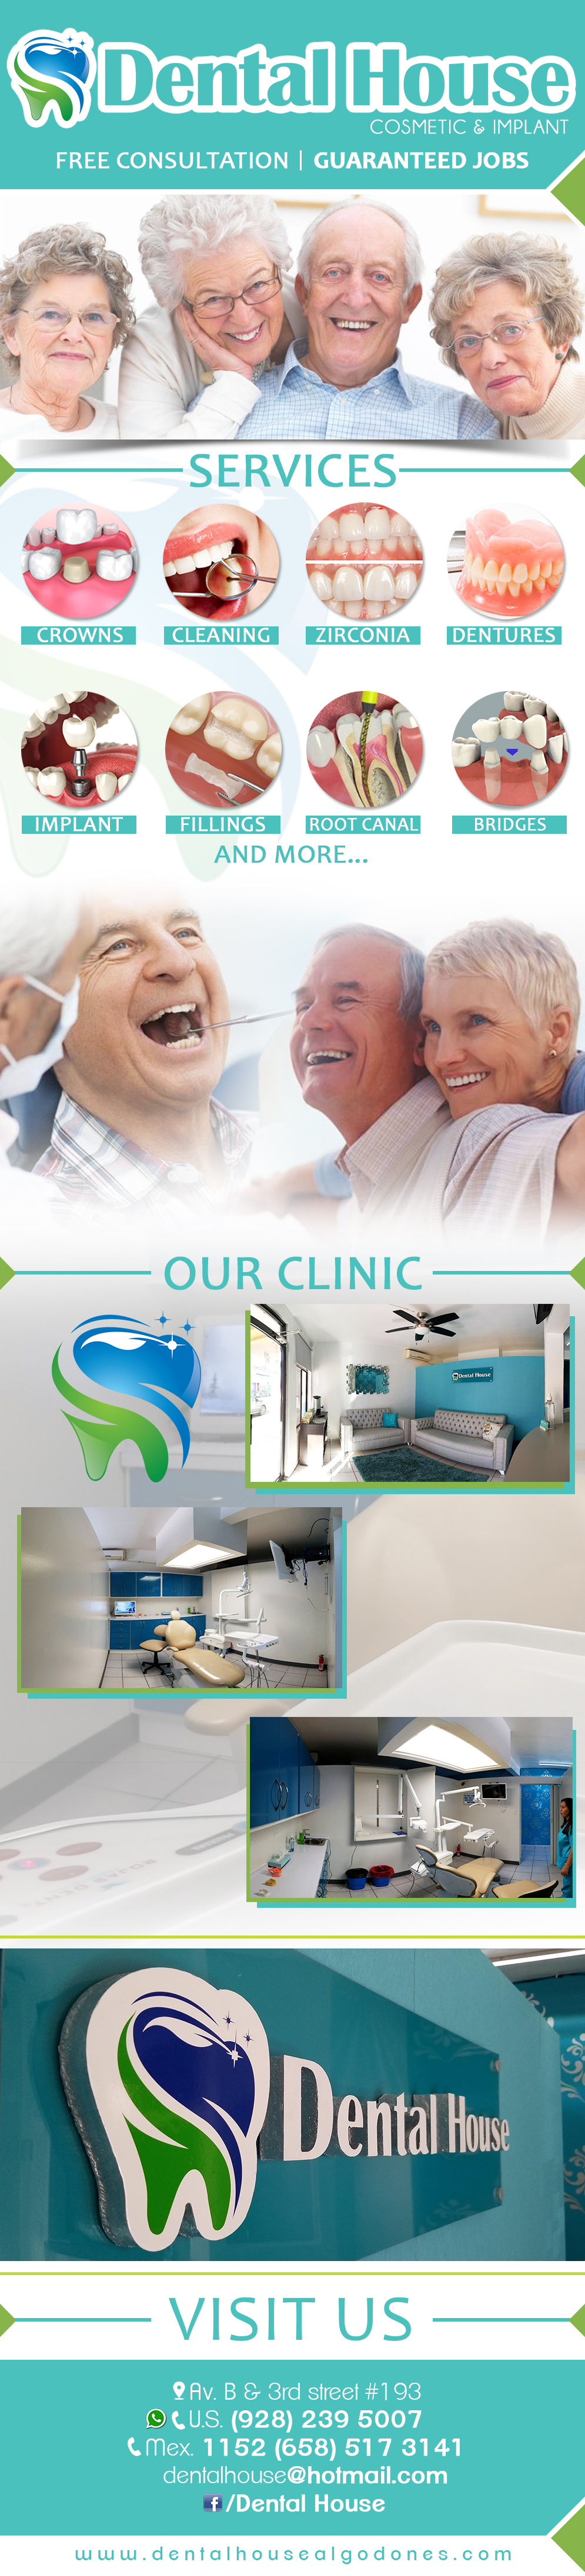 Dental House Cosmetic & Implant in Algodones  in Algodones  Our services: Crowns, Cleaning, Zirconia, Dentures, Implant, Fillings, Root Canal, Bridges and more...     Crowns  Cleaning Zirconia Dentures Implant, Fillings Root Canal Bridges Dental House